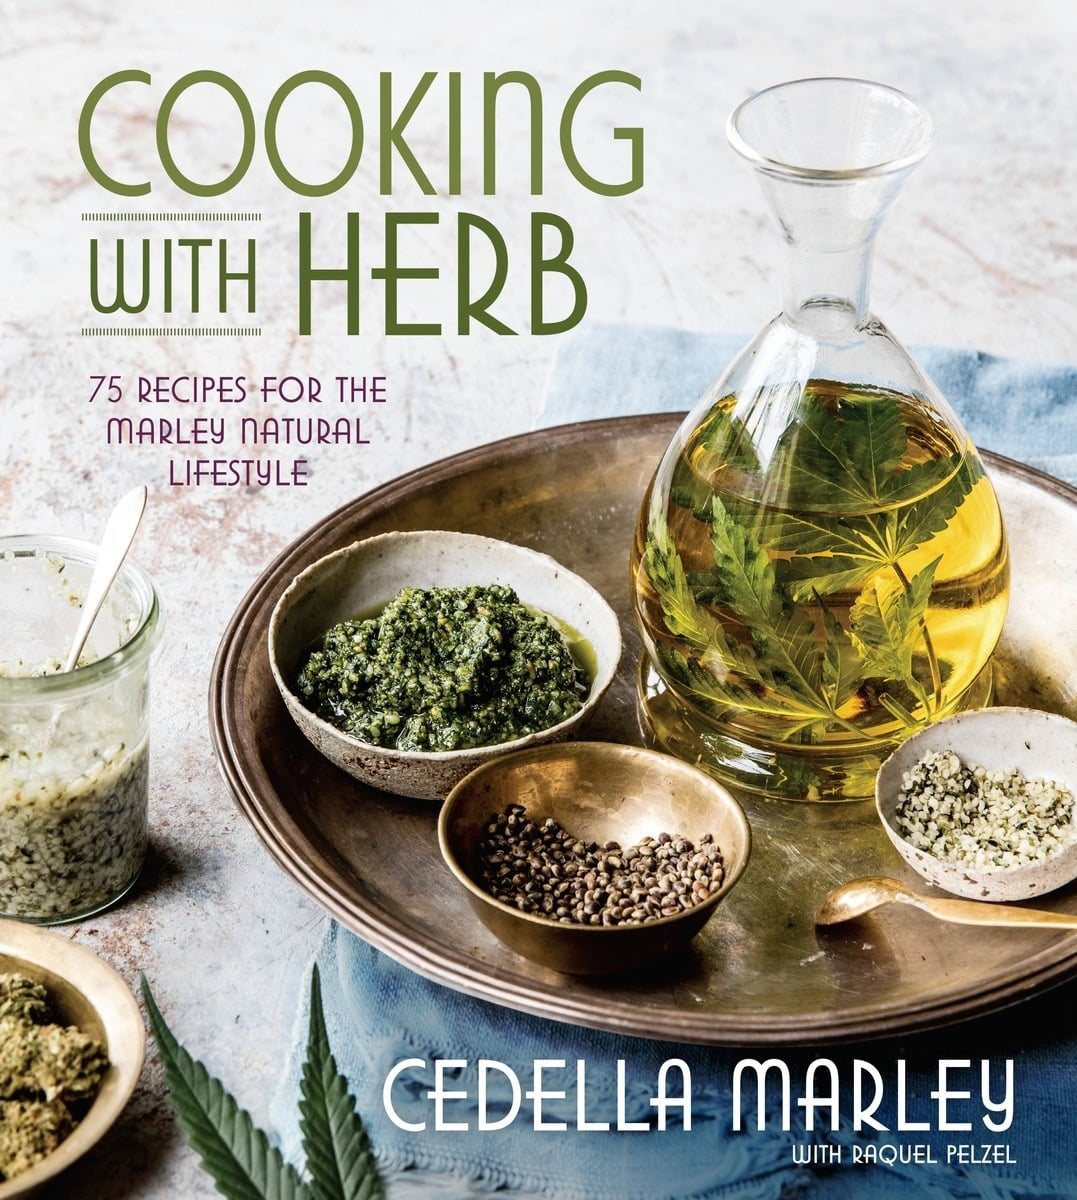 Kitchen Herbs: How To Safely Cook With Cannabis